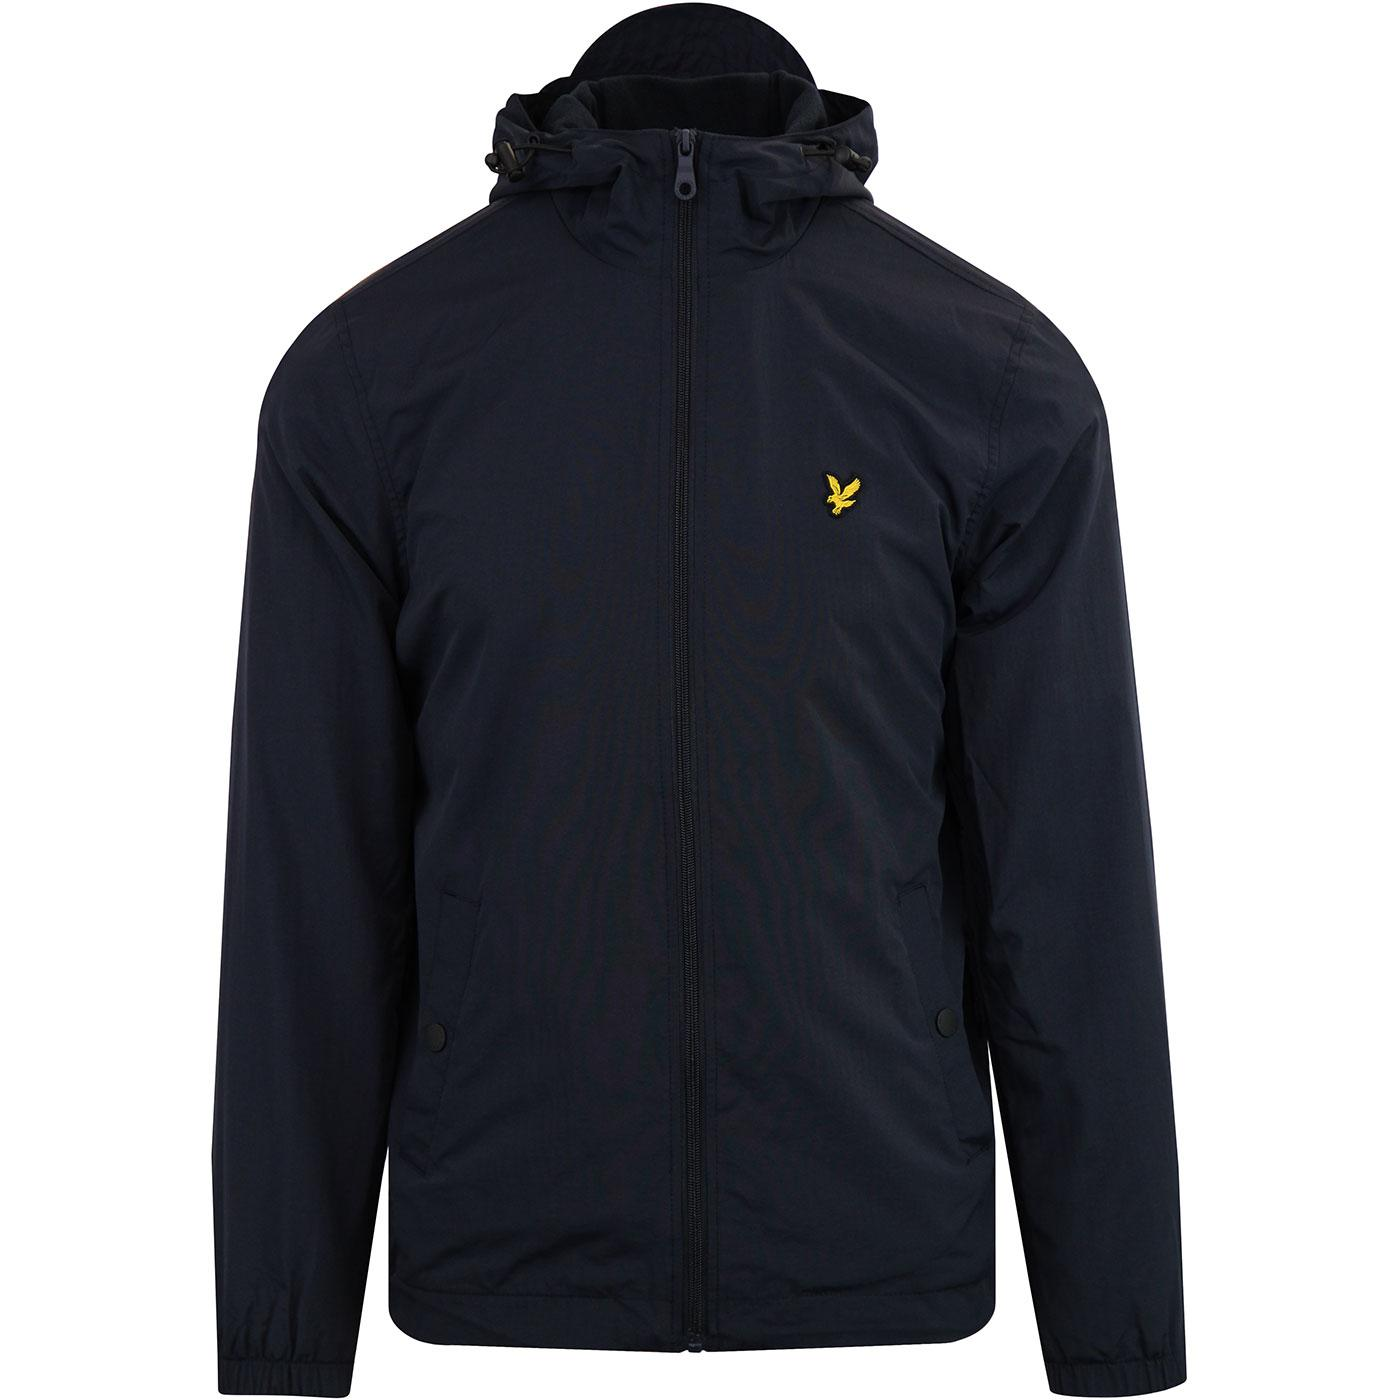 LYLE & SCOTT Retro Microfleece Lined Hooded Jacket